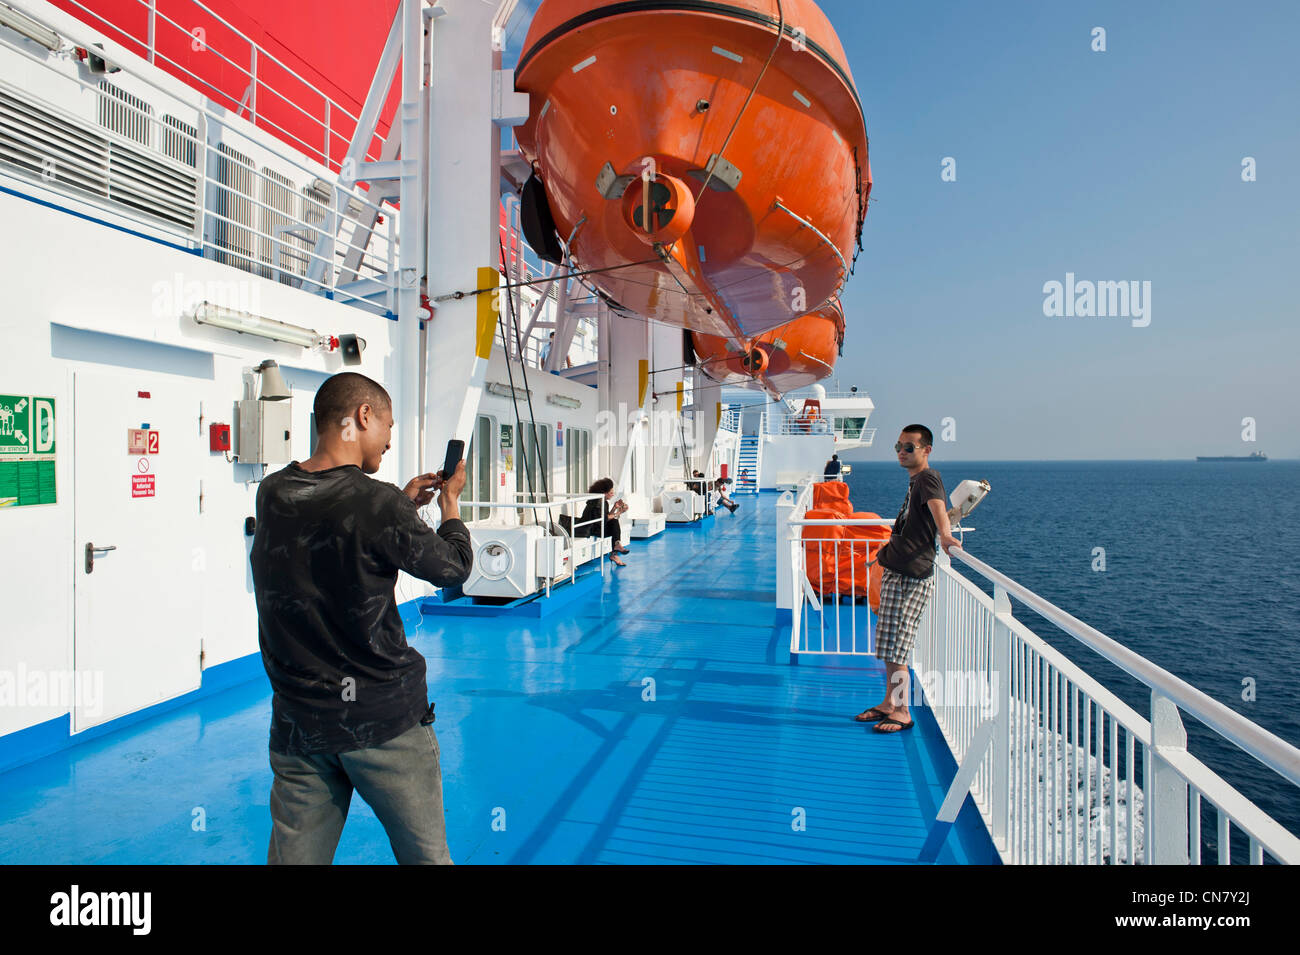 Greece, the Nissos Chios highspeed ferry of Hellenic Seaways going to Chios Island - Stock Image